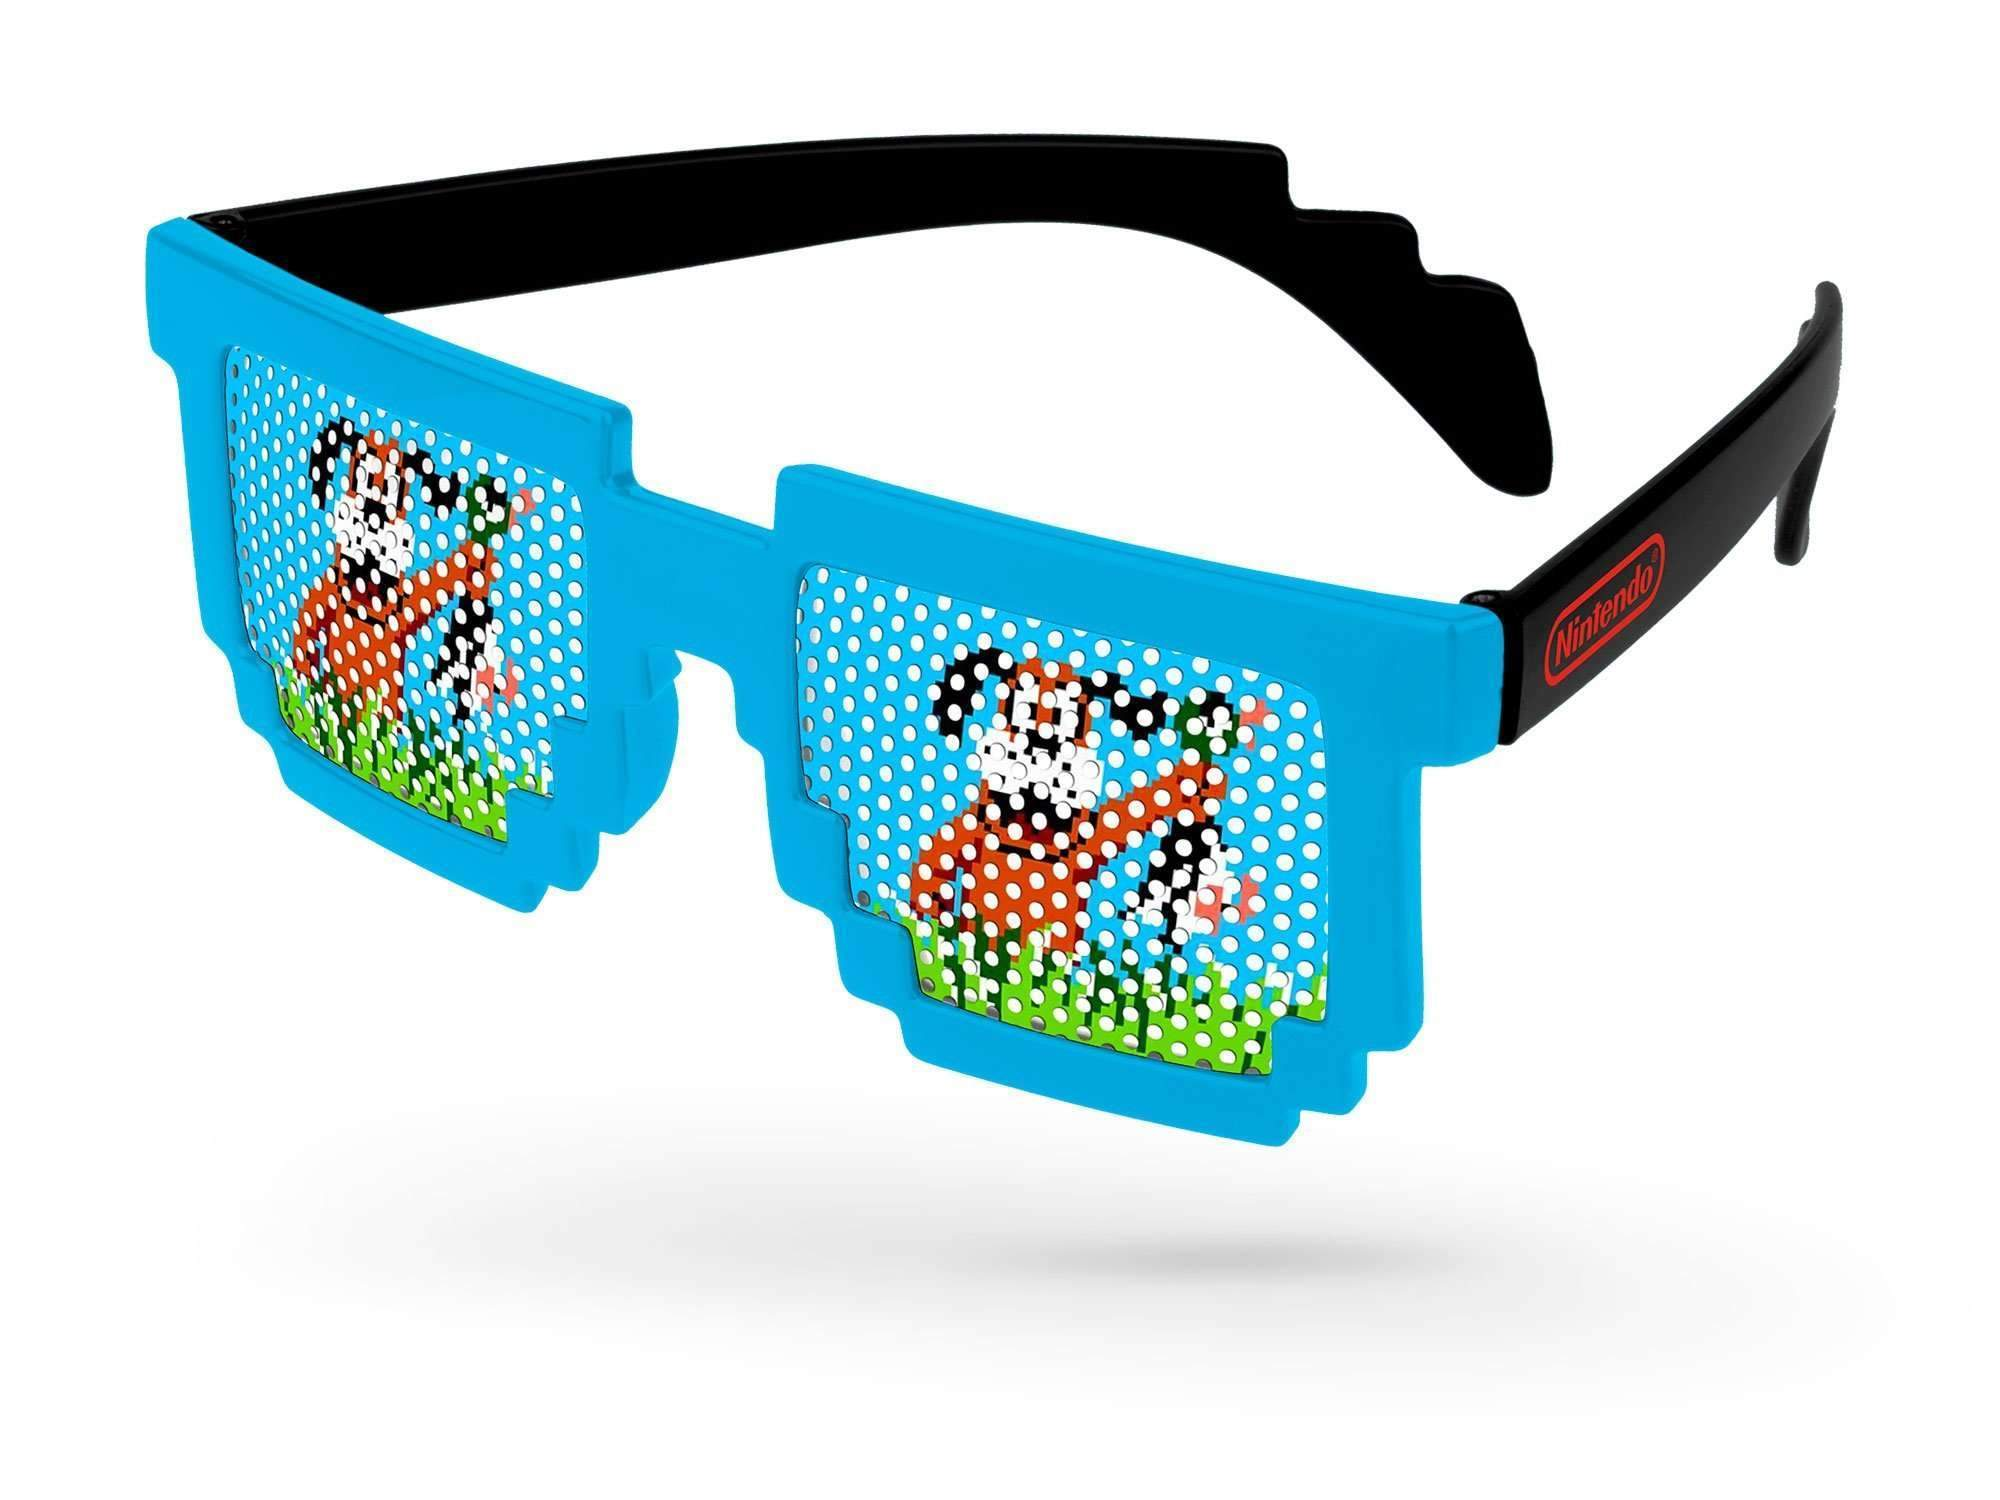 PC112 - 2-Tone Pixel Pinhole Promotional Sunglasses w/ 1-color lens imprint